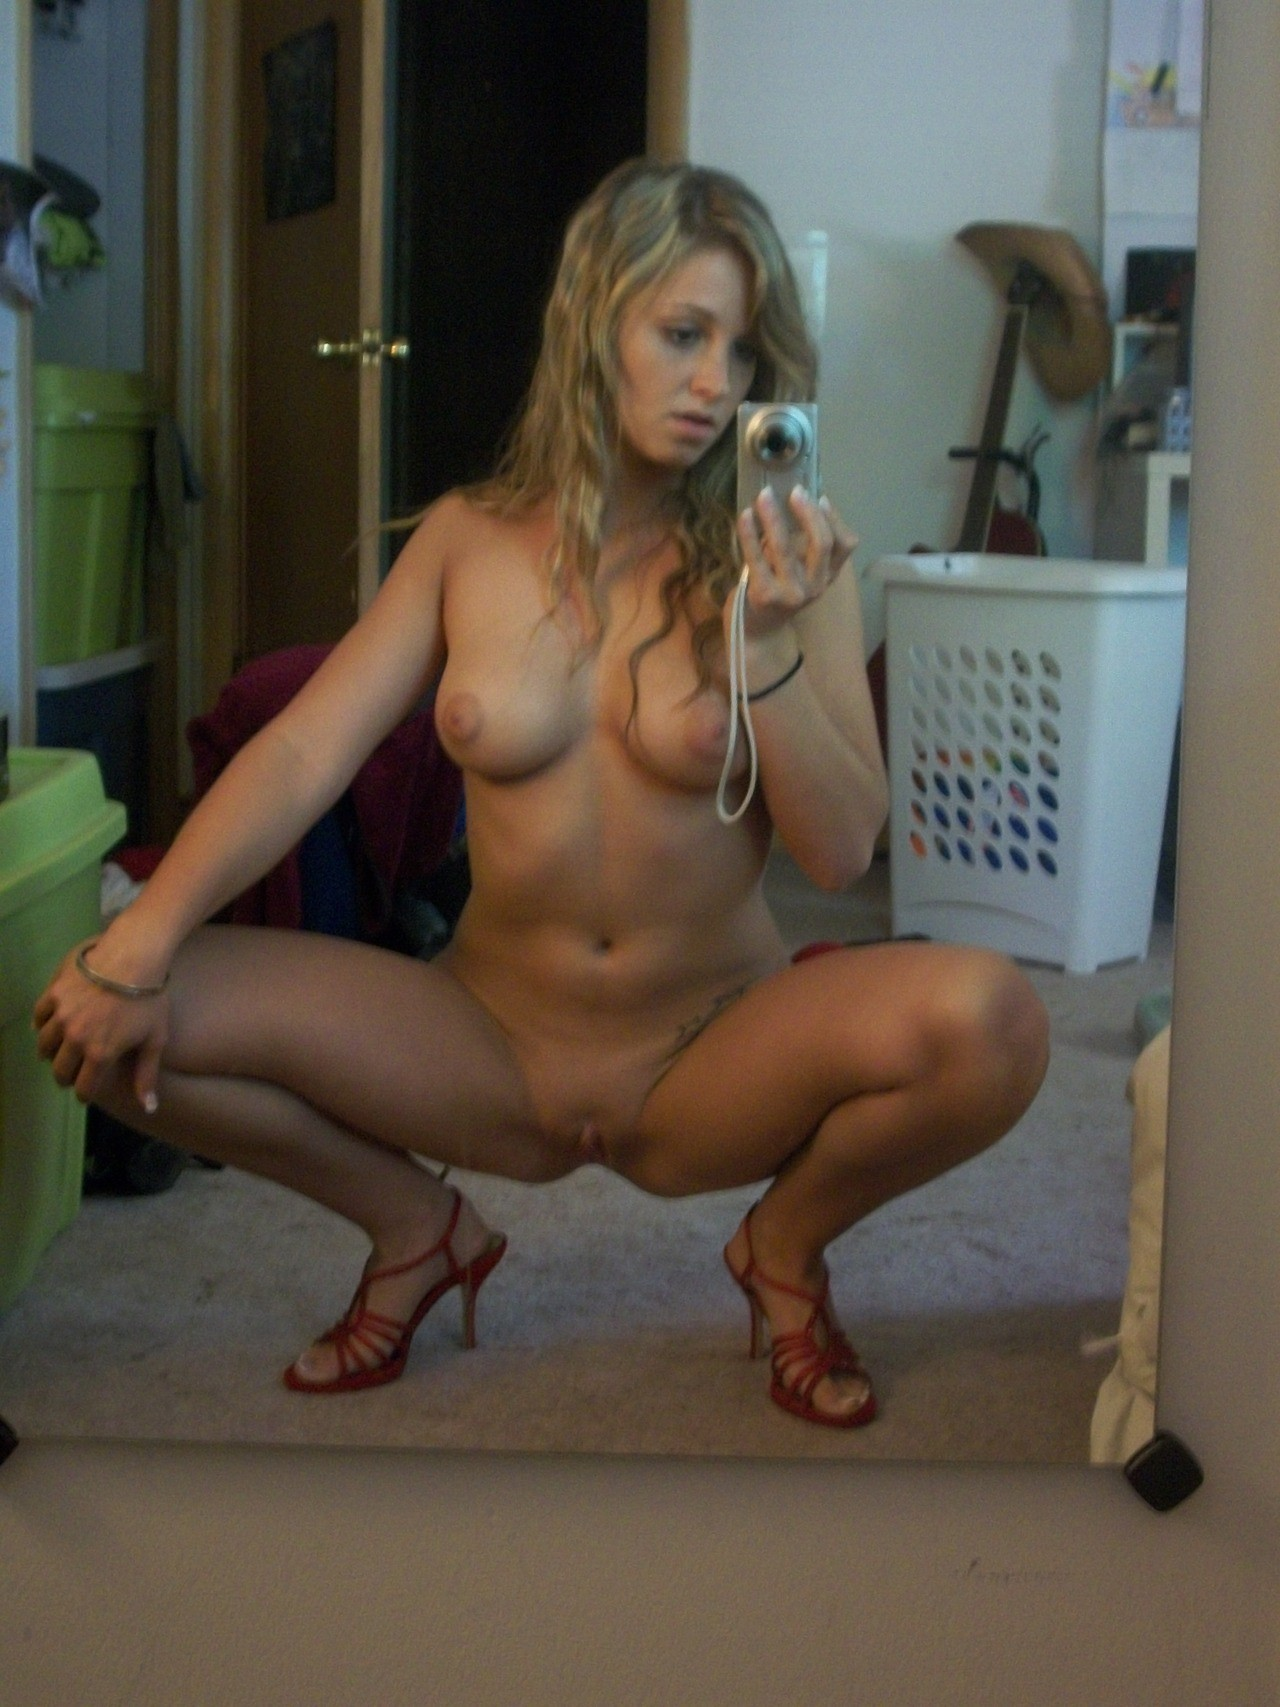 selfie-naked-girls-selfshot-amateur-mix-vol5-85